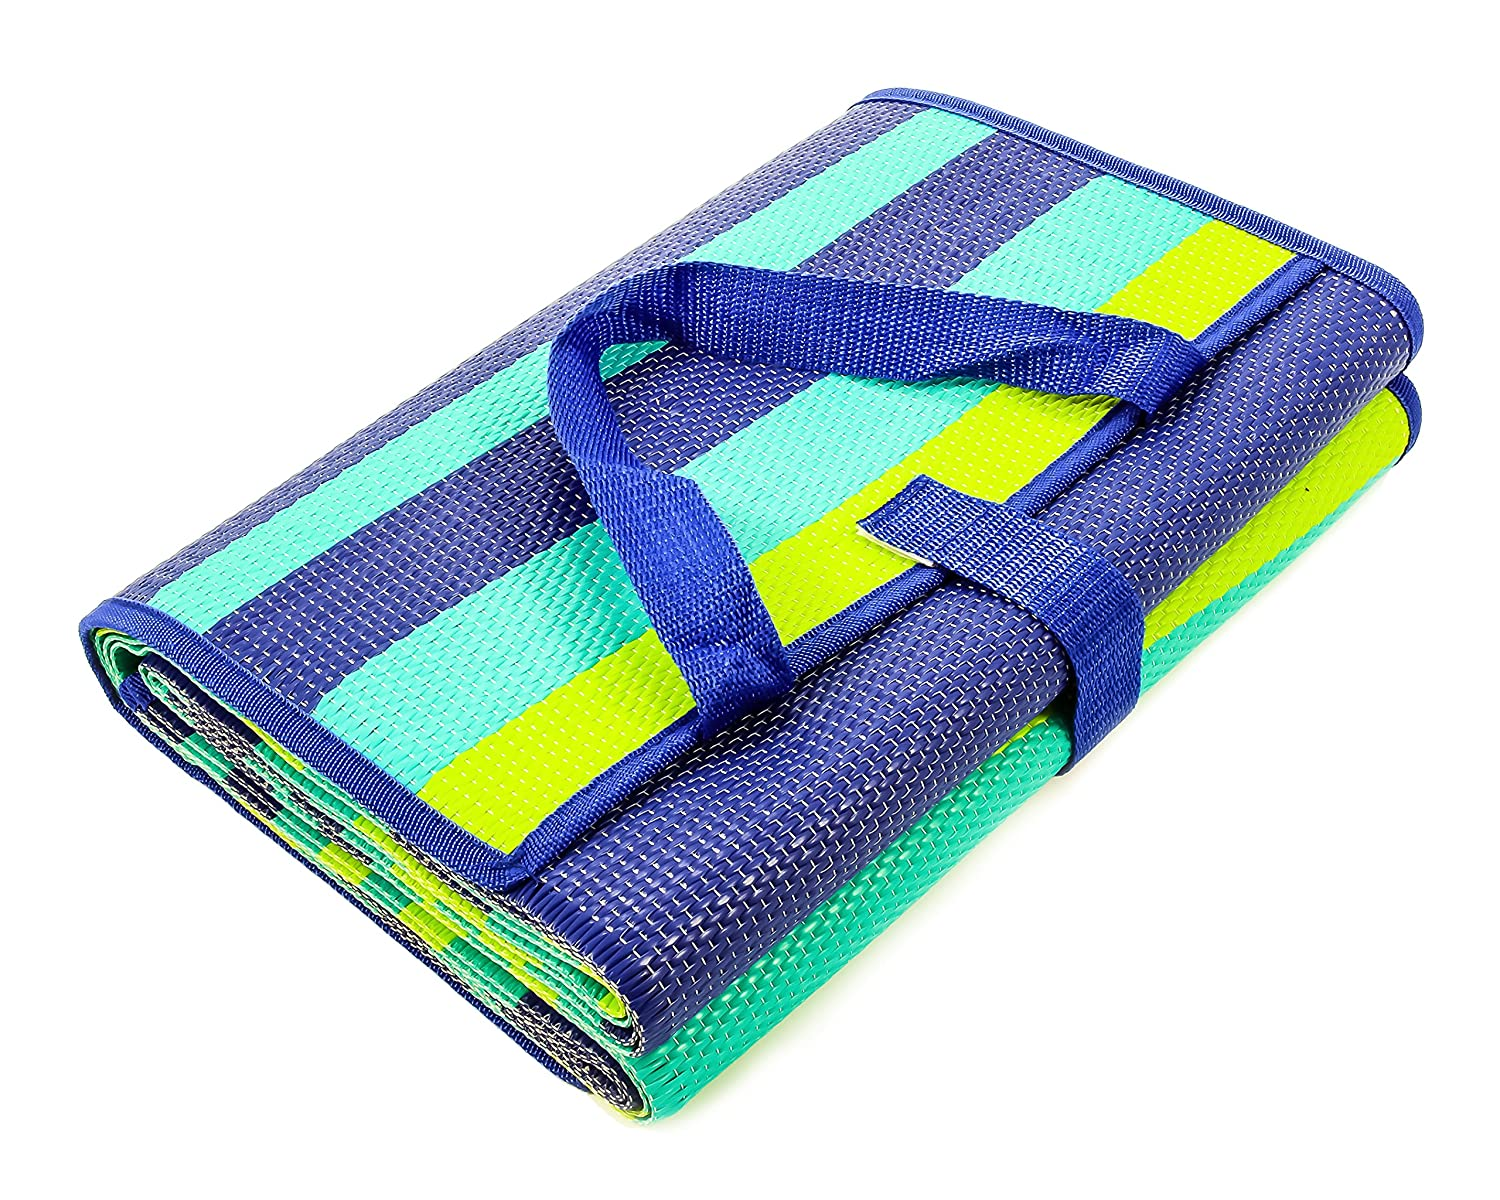 Perfect for Picnics 53266 Weatherproof and Mold and Mildew Resistant 60x 78 Beaches RV and Outings Camco Blue and White 60 x 78 Life is Better at The Campsite Handy Mat with Strap